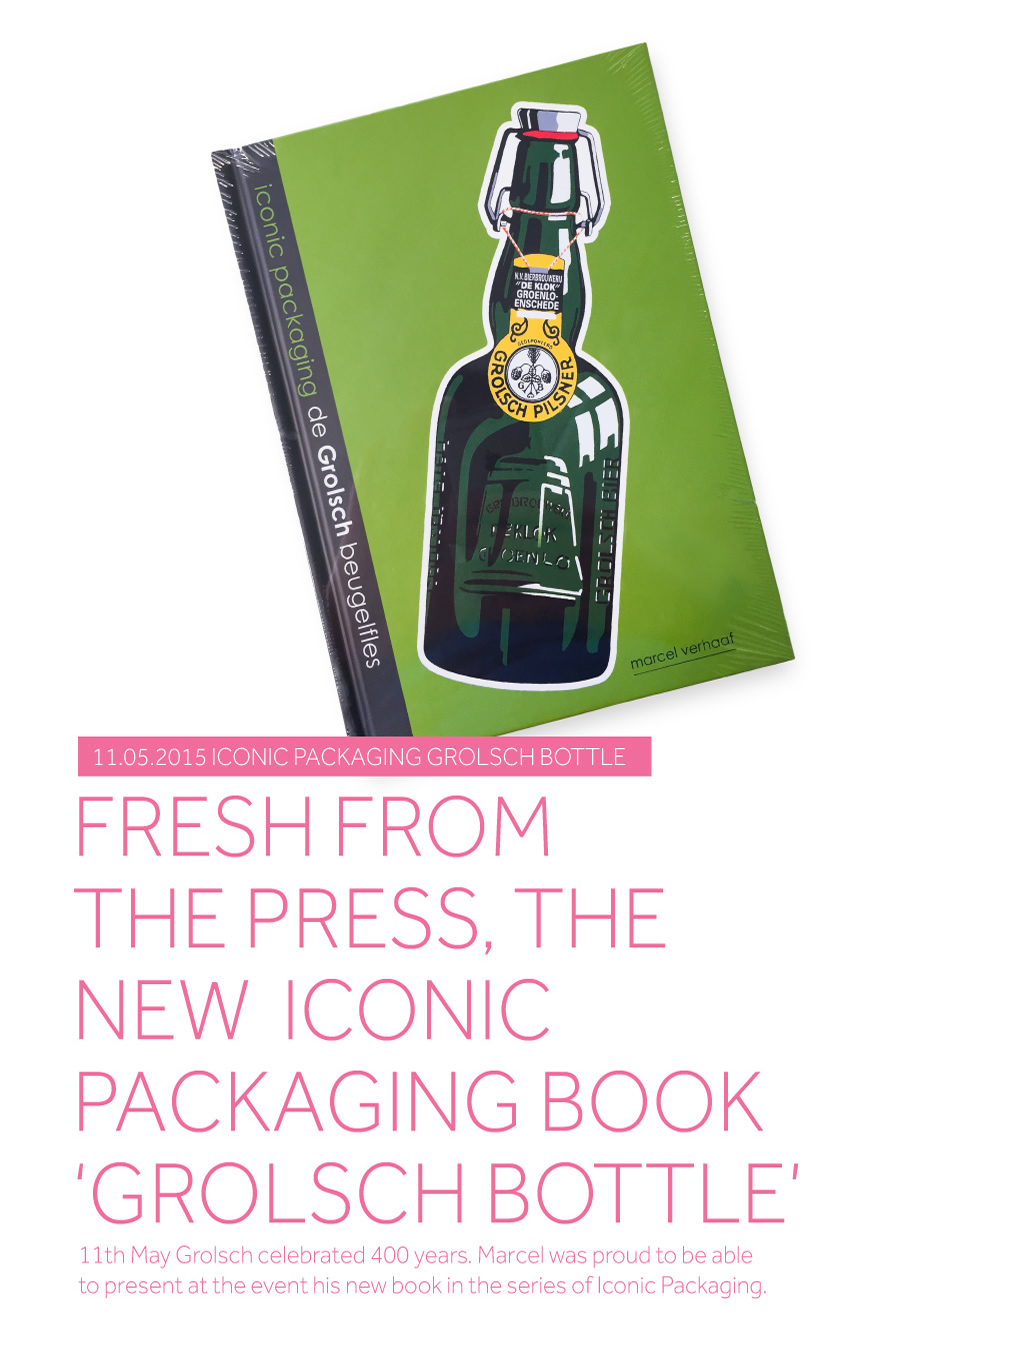 Brand Candies - Iconic Packaging Book - The Grolsch Bottle